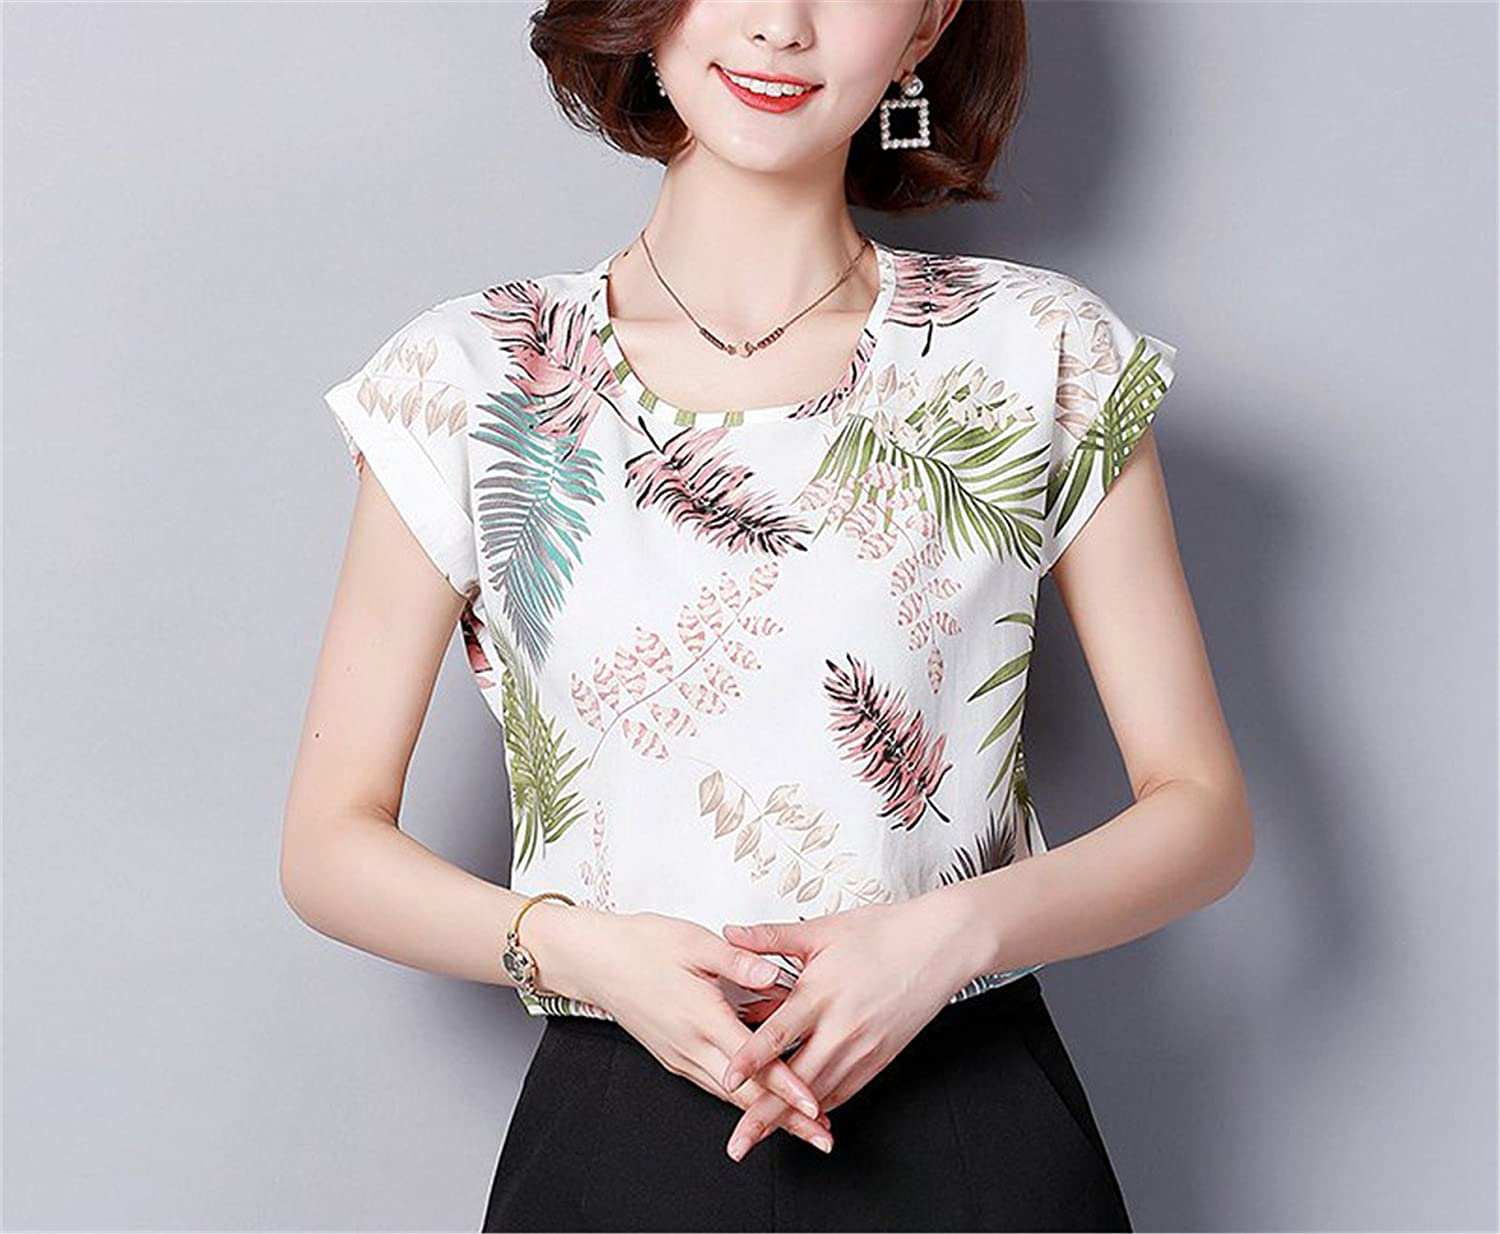 OUXIANGJU Women New Summer Print Chiffon Tops Short Sleeve Patterned Shirts Women Blusas Plus Size at Amazon Womens Clothing store: